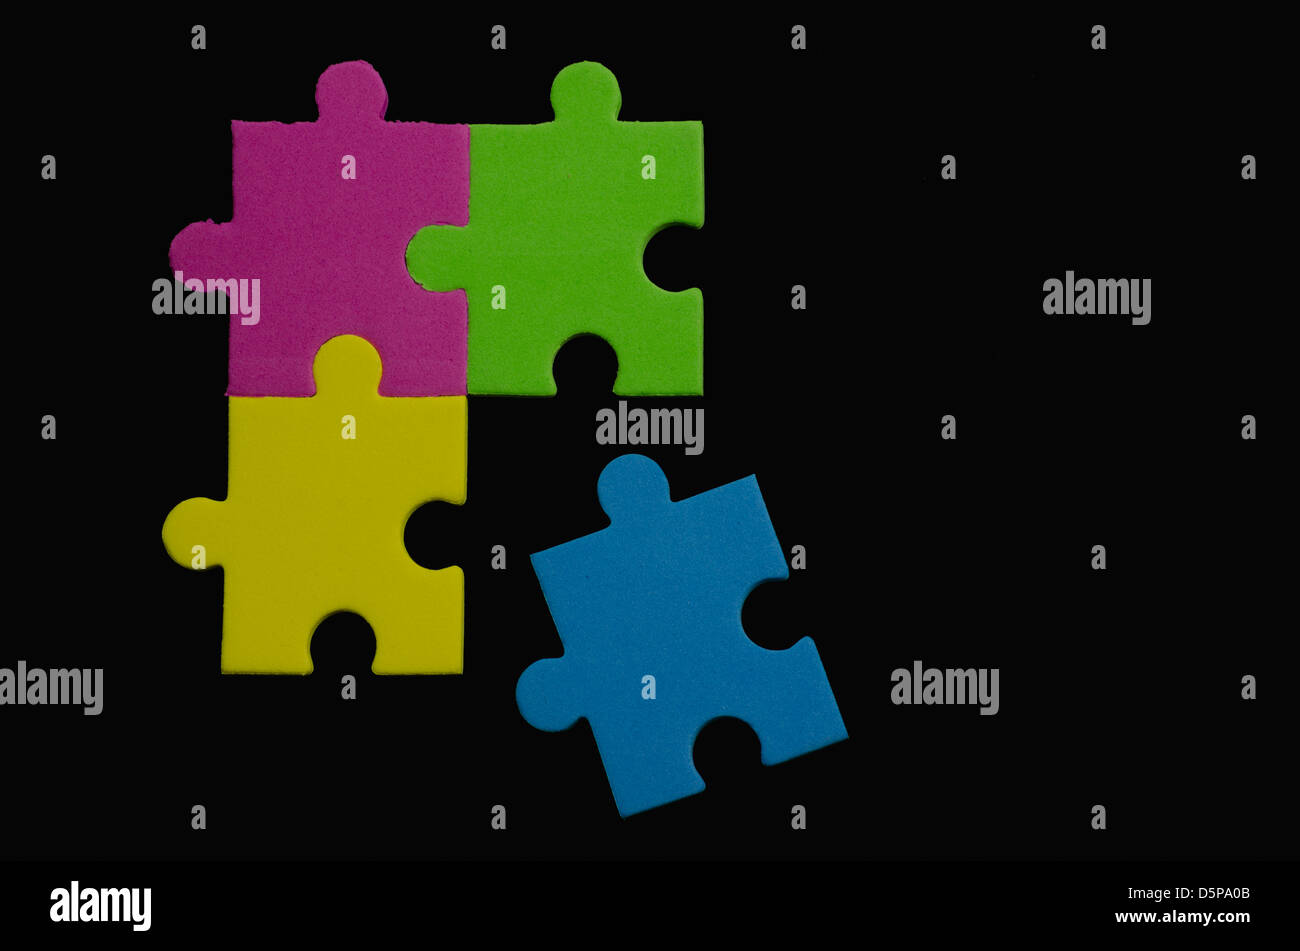 Colorful puzzle pieces over black background representing variety and tolerance - Stock Image